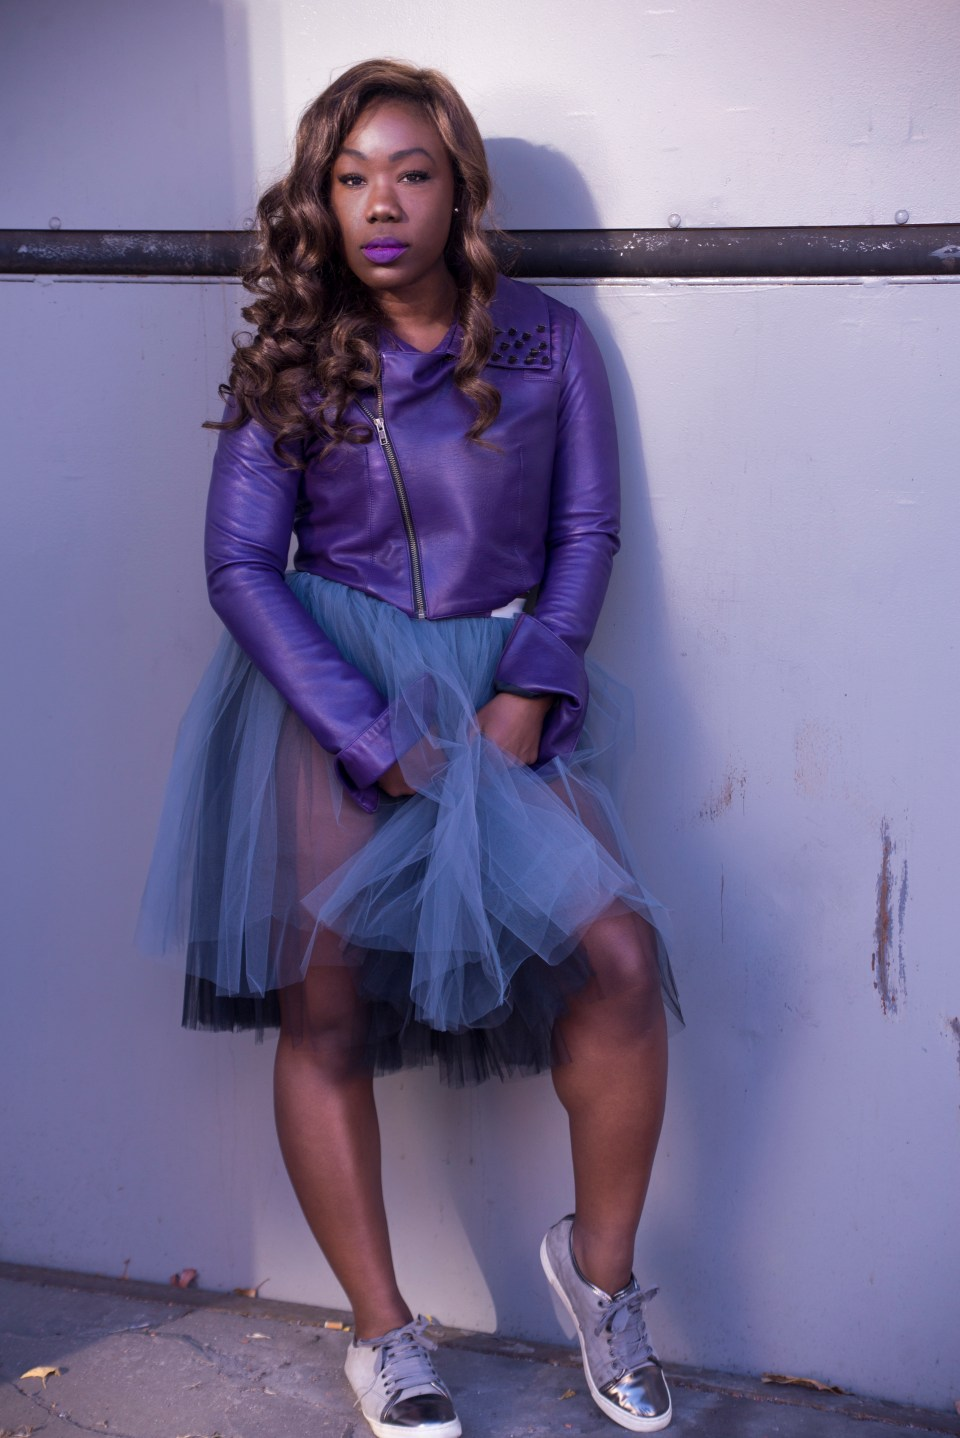 PMPhotography_MalindaKnowles_Blog_PurpleJacket_GrayTutu